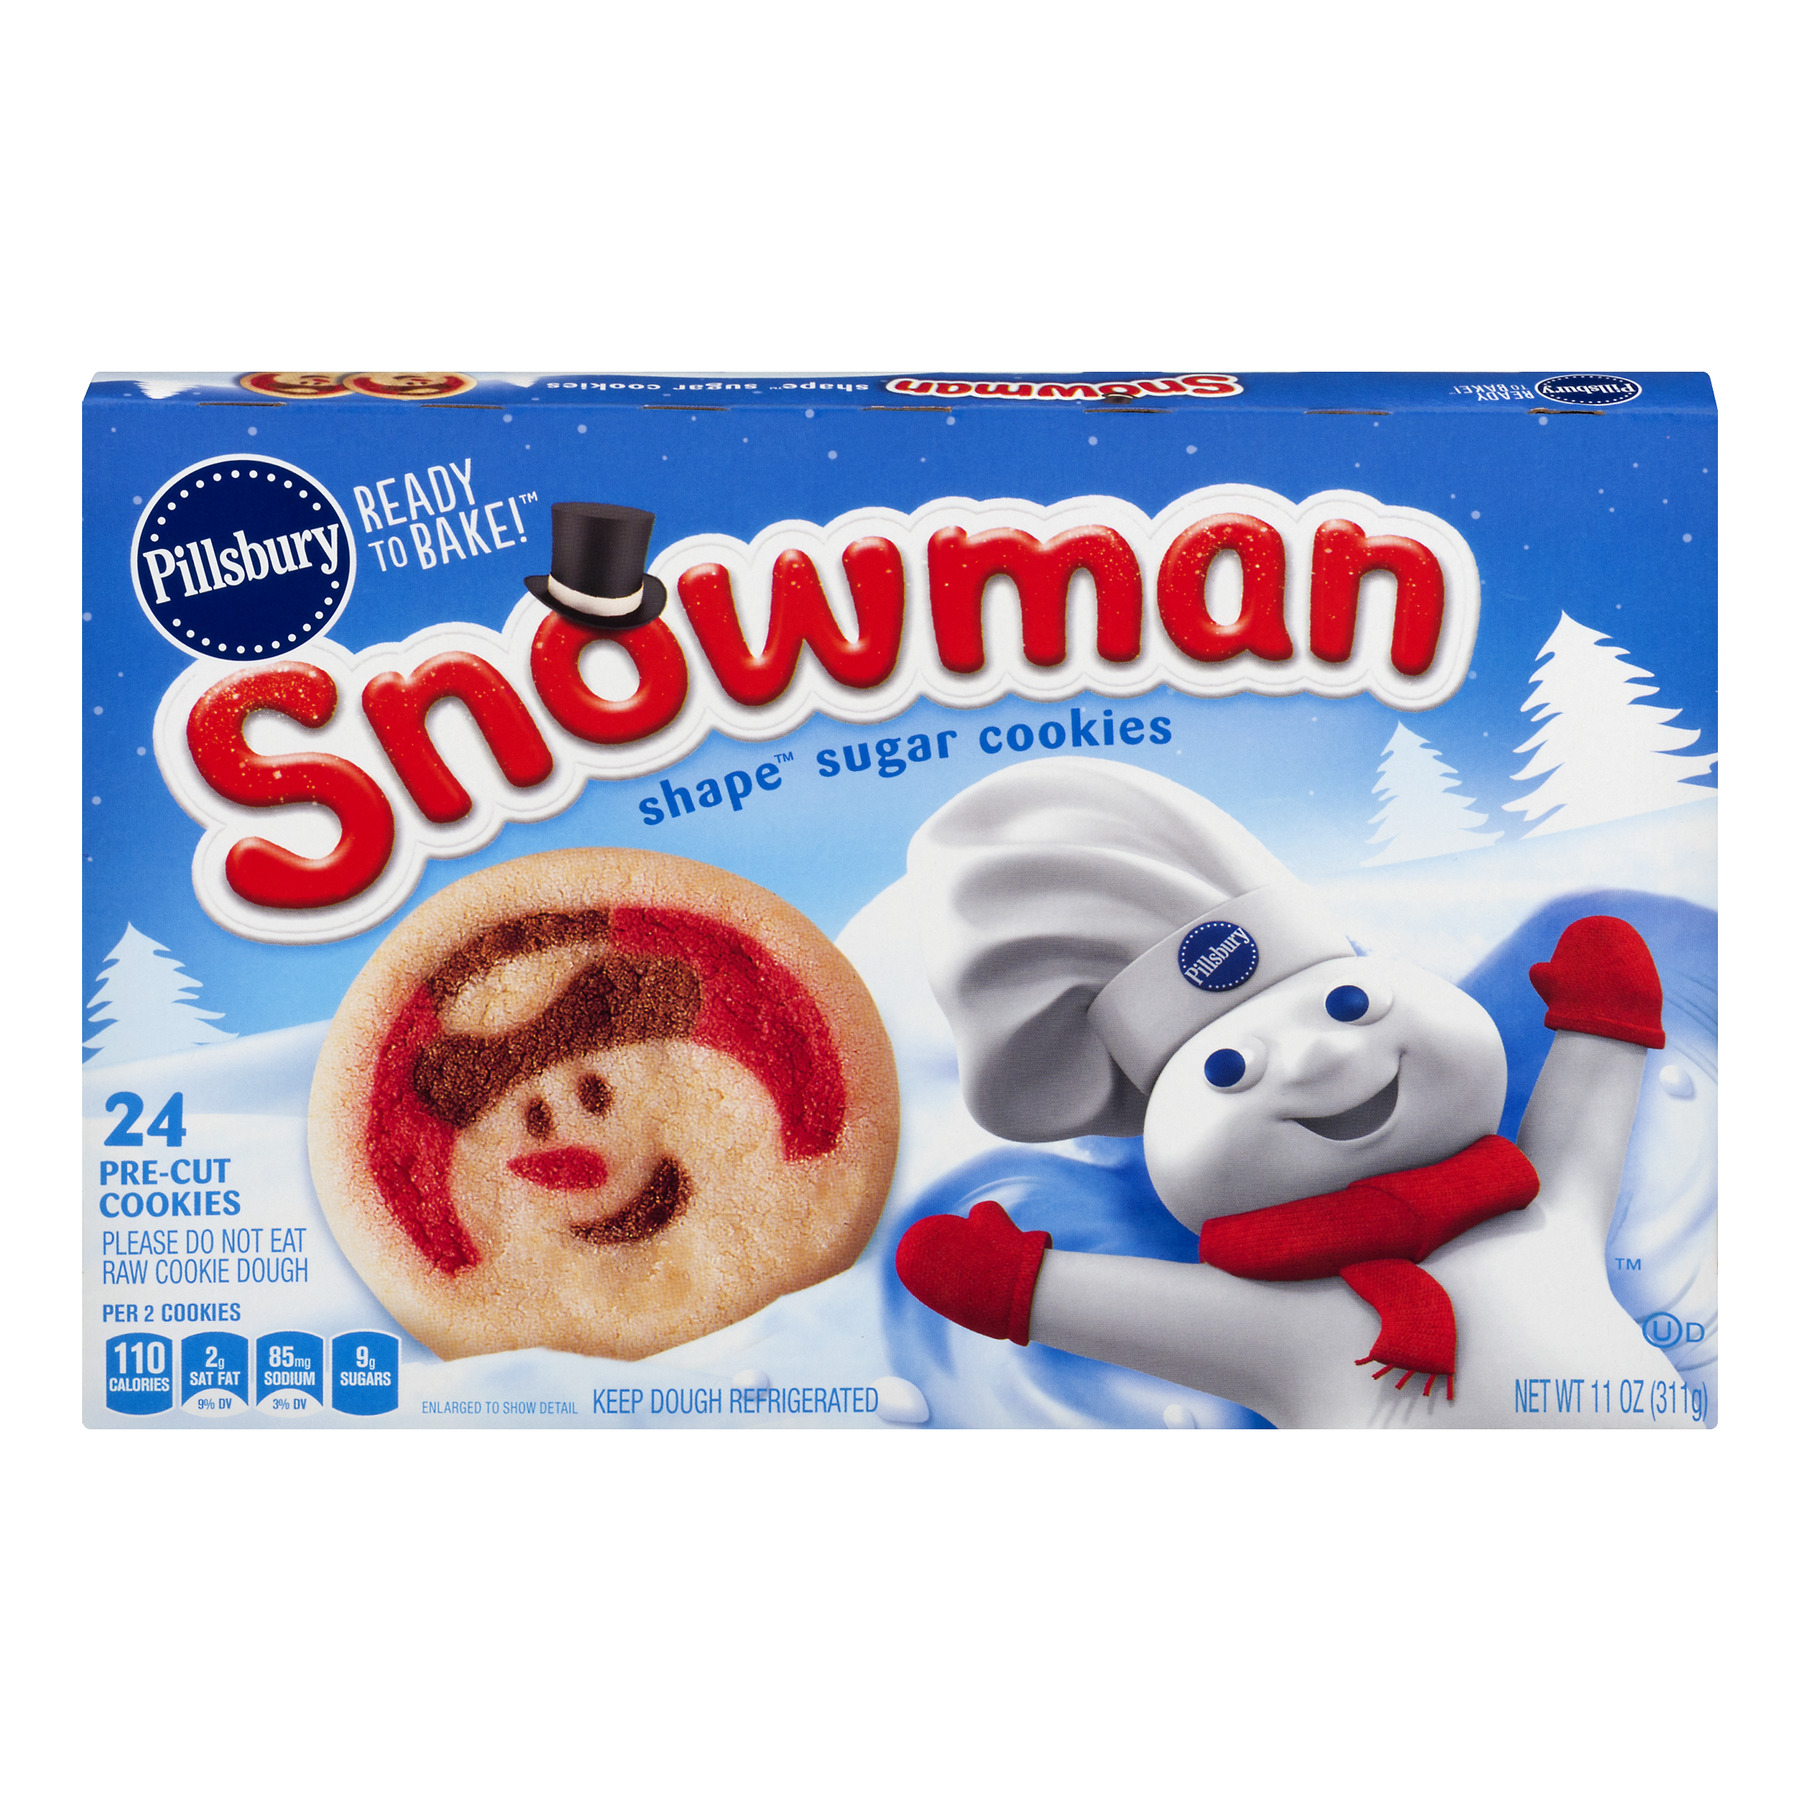 Pillsbury Ready To Bake! Snowman Shape Sugar Cookies - 24 CT